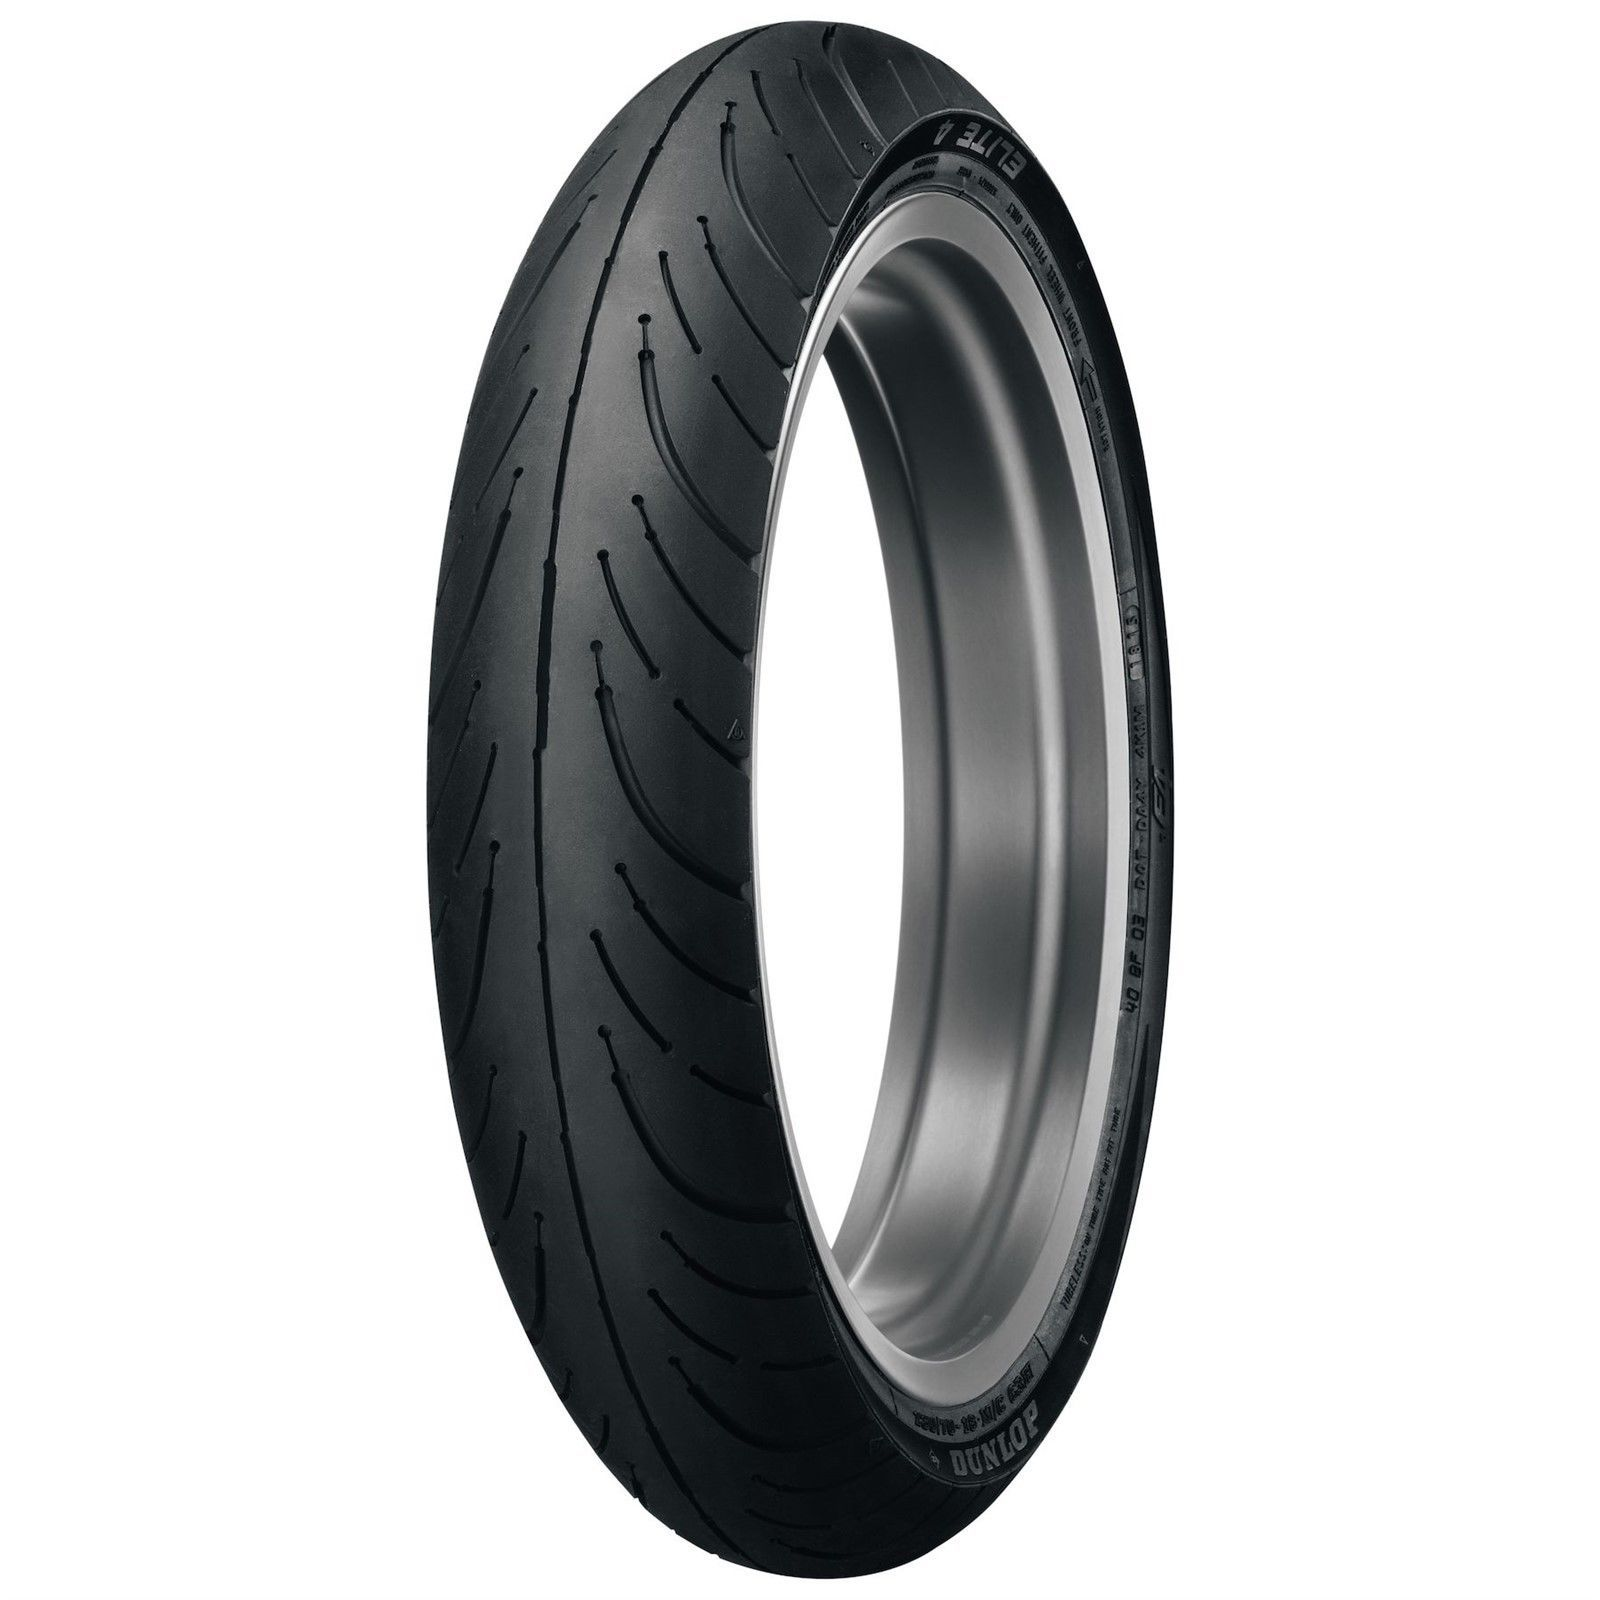 New Dunlop Elite 4 150/80R-17 Radial Front Motorcycle Tire 72H High Mileage